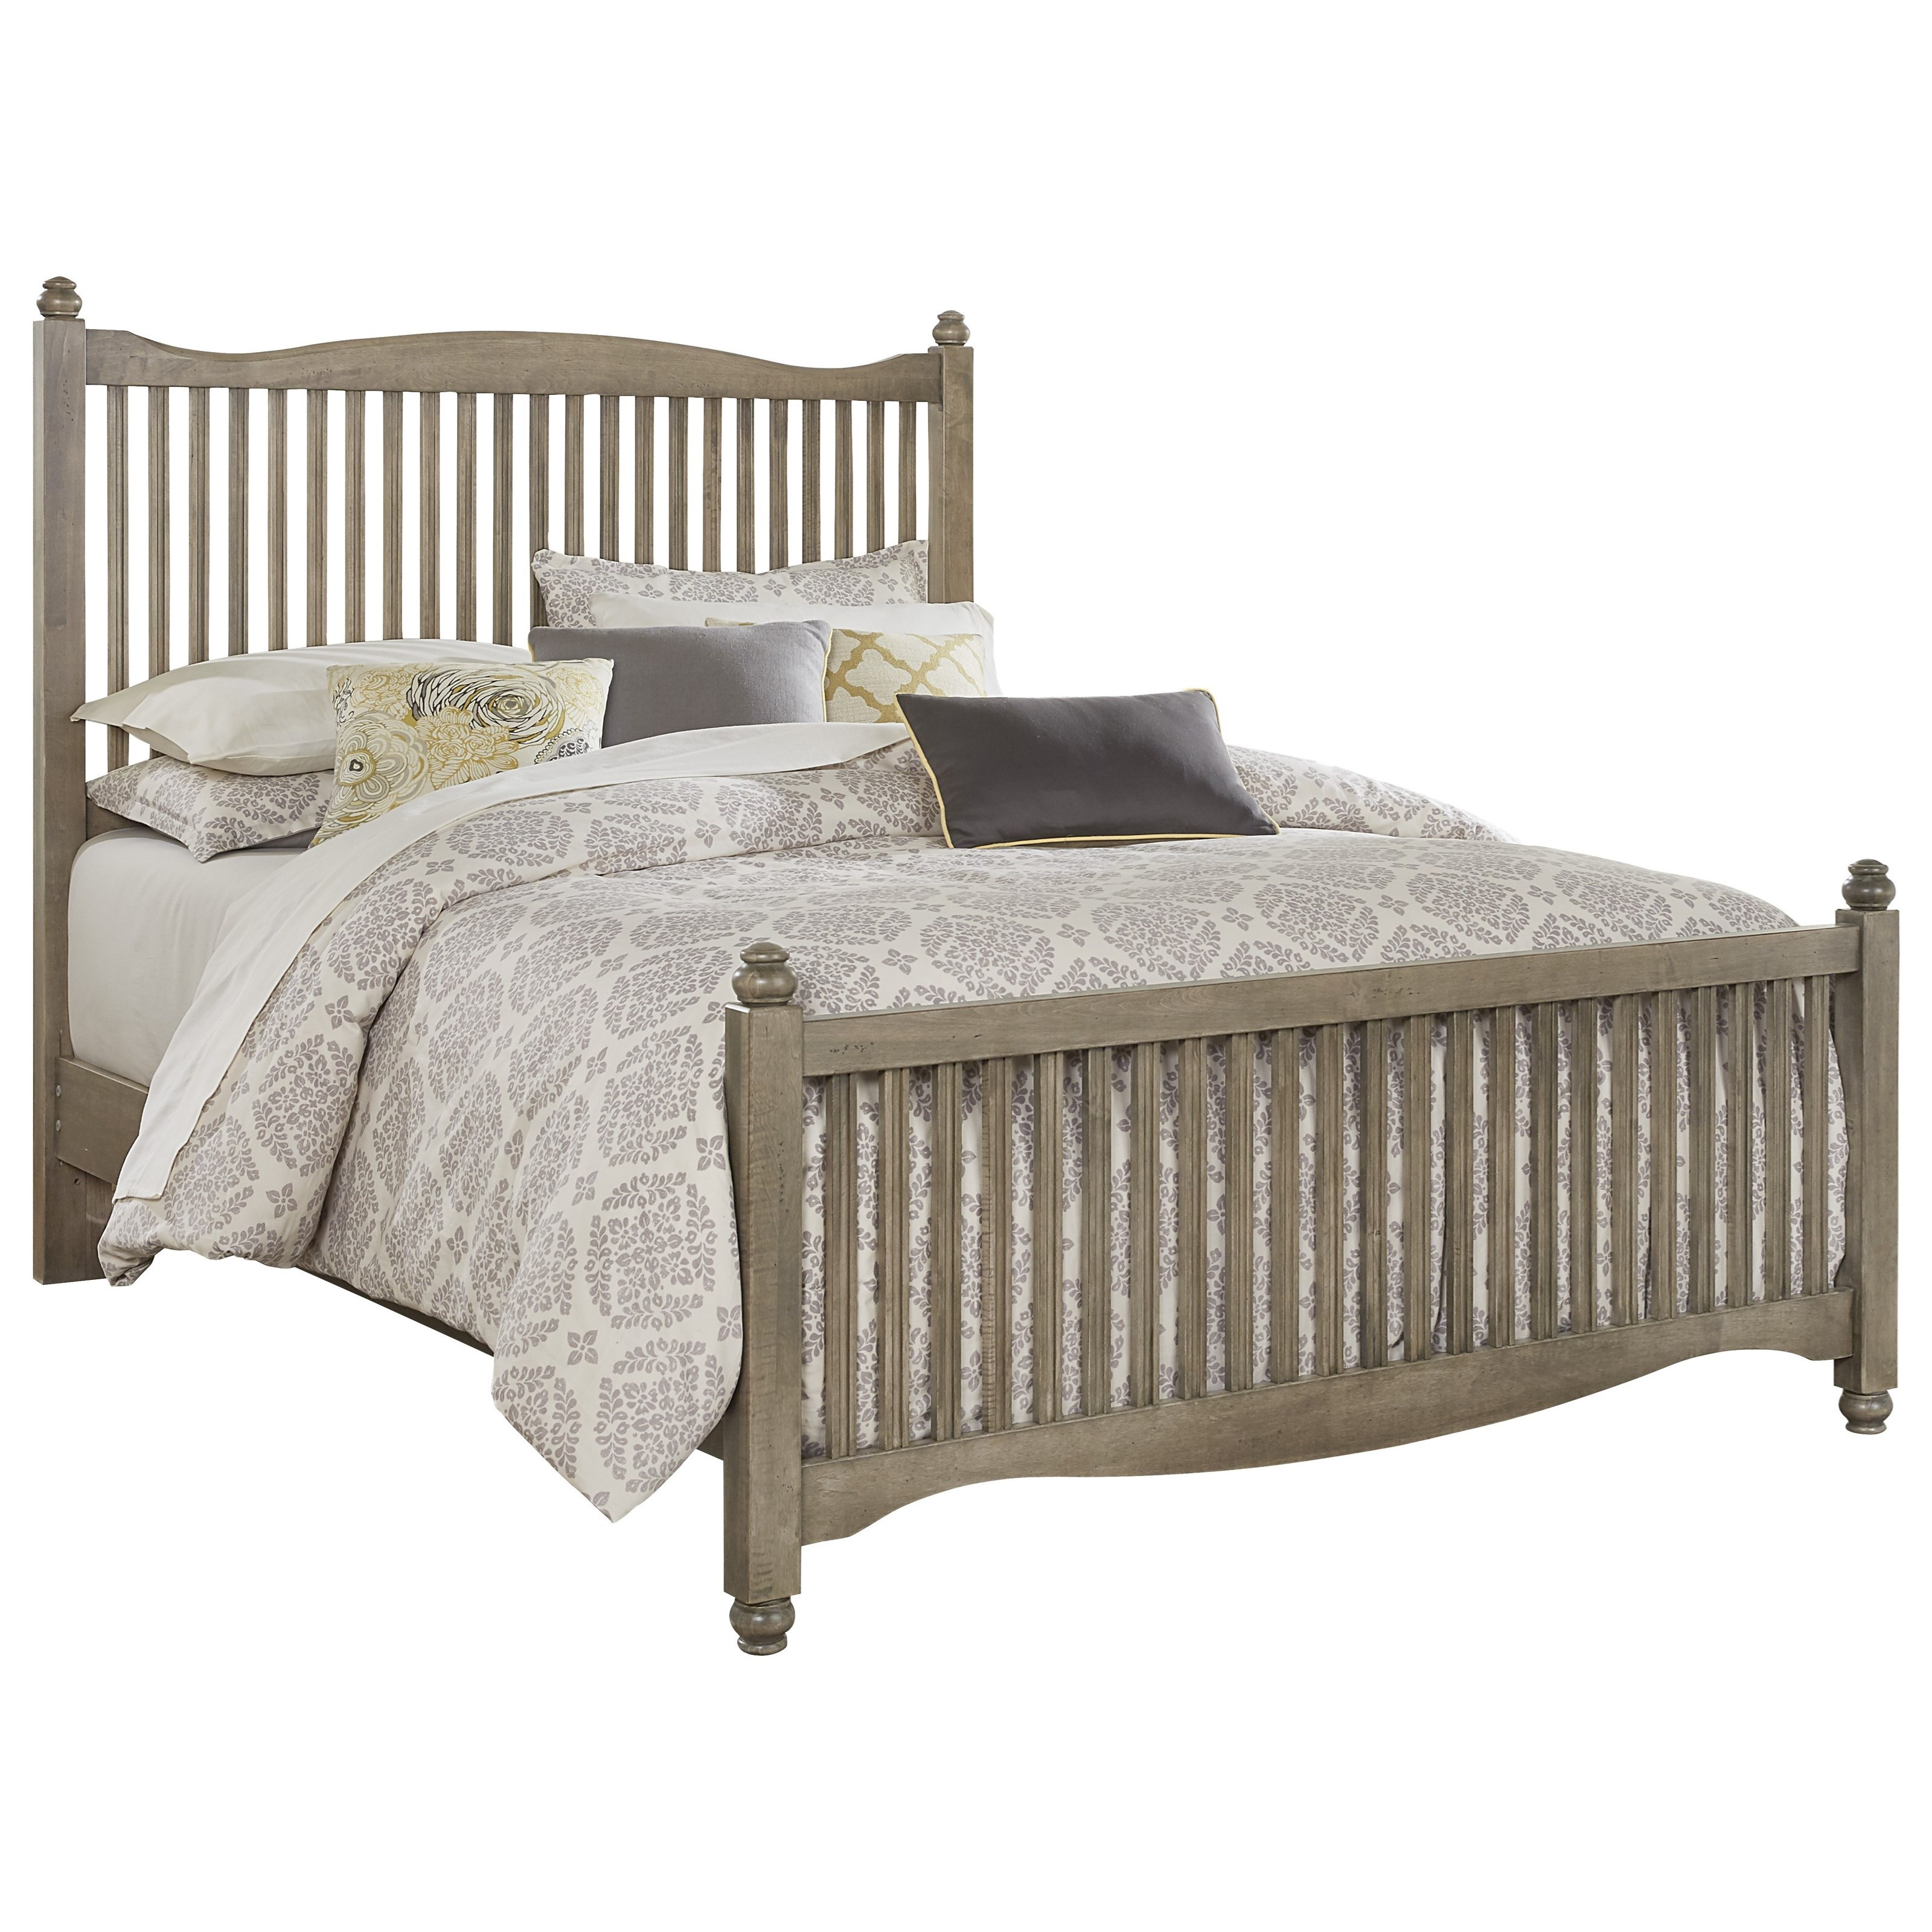 Vaughan Bassett American Maple Queen Slat Bed - Item Number: 401-557+755+922